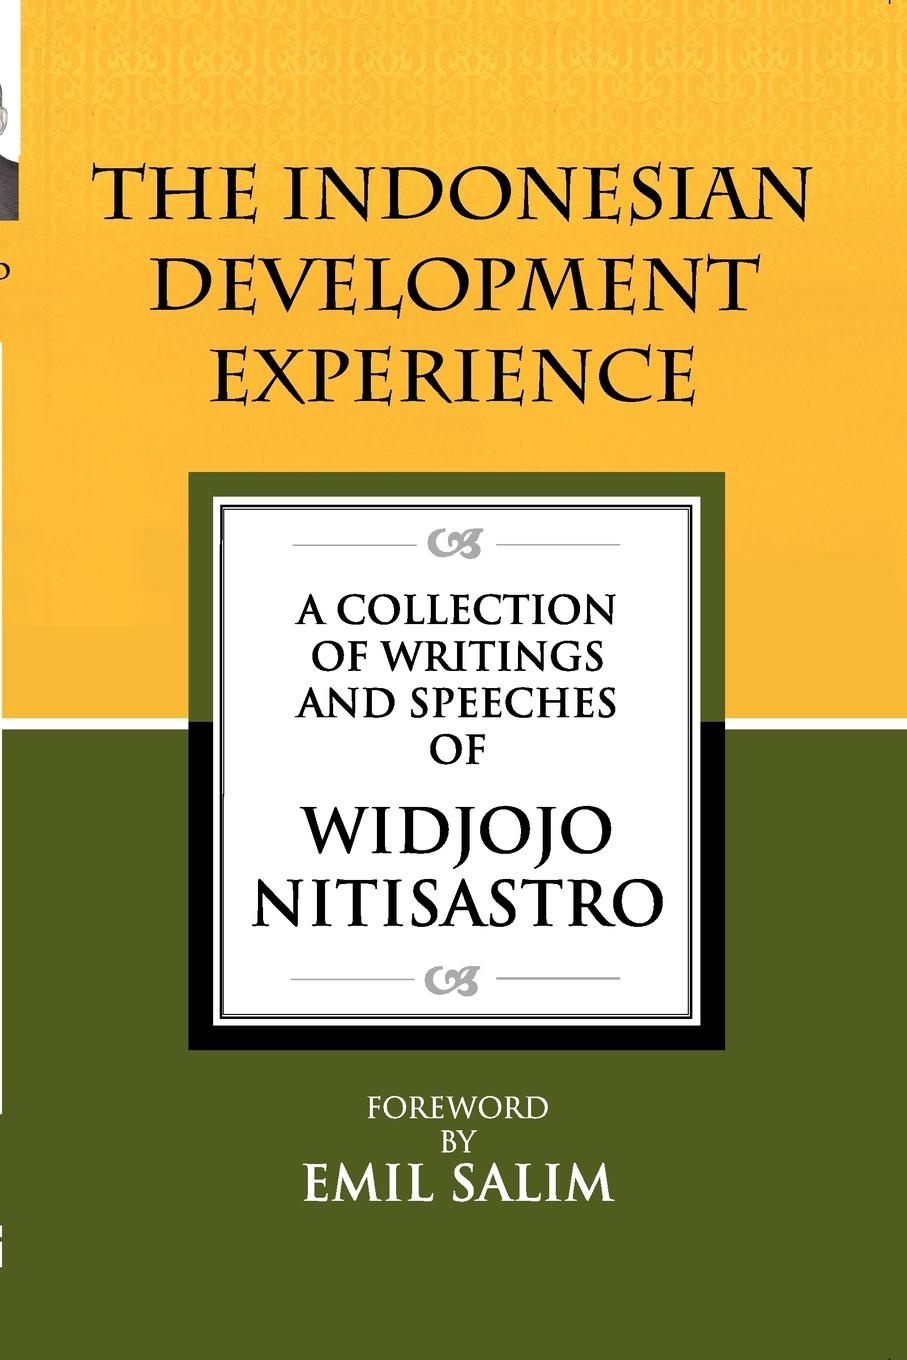 Widjojo Nitisastro The Indonesian Development Experience. A Collection of Writings and Speeches development of small scale food industry cluster in indonesia